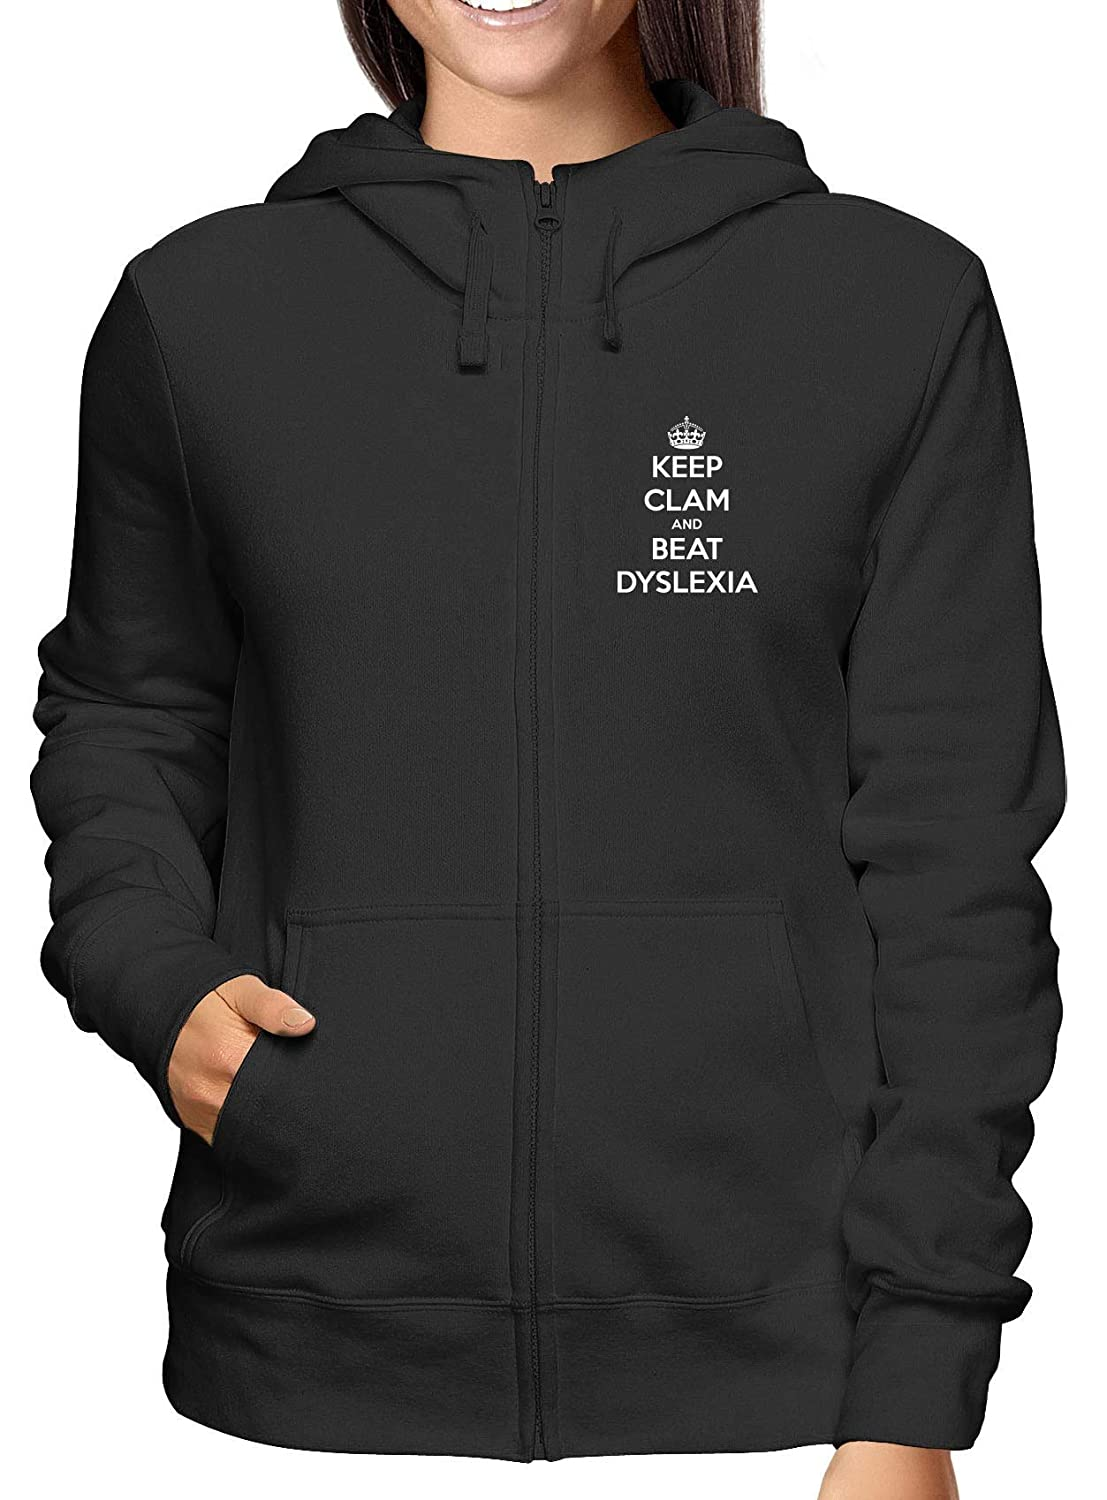 Zip Tkc3365 Femme Keep Noir Calm Sweatshirt And Capuche Beat A w0v8OmnN